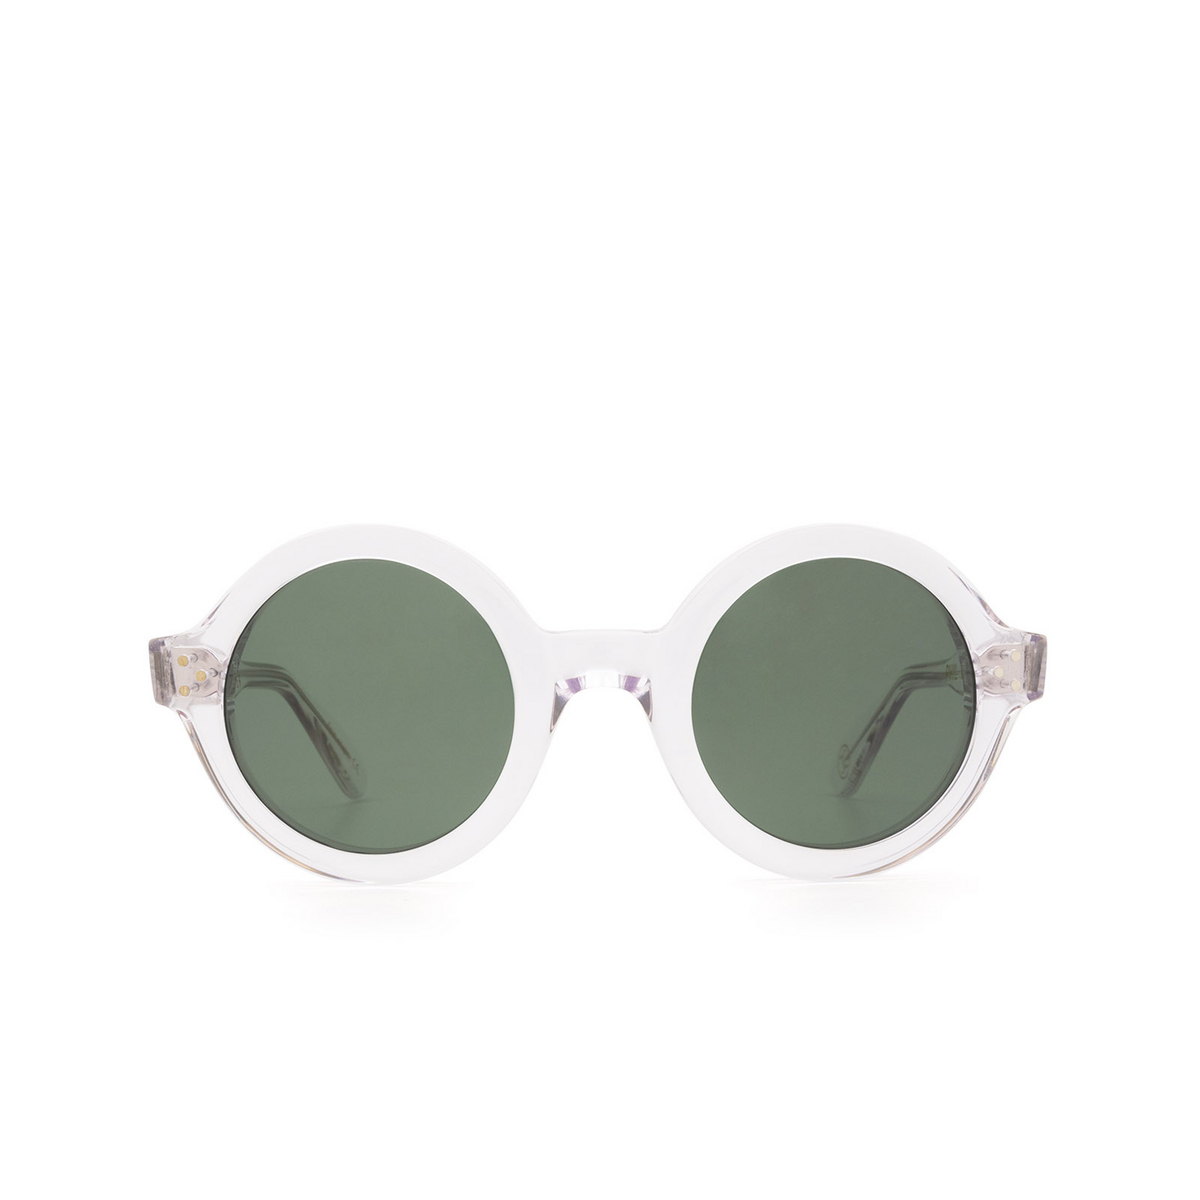 Lesca® Round Sunglasses: Phil Sun color Crystal 3 - front view.